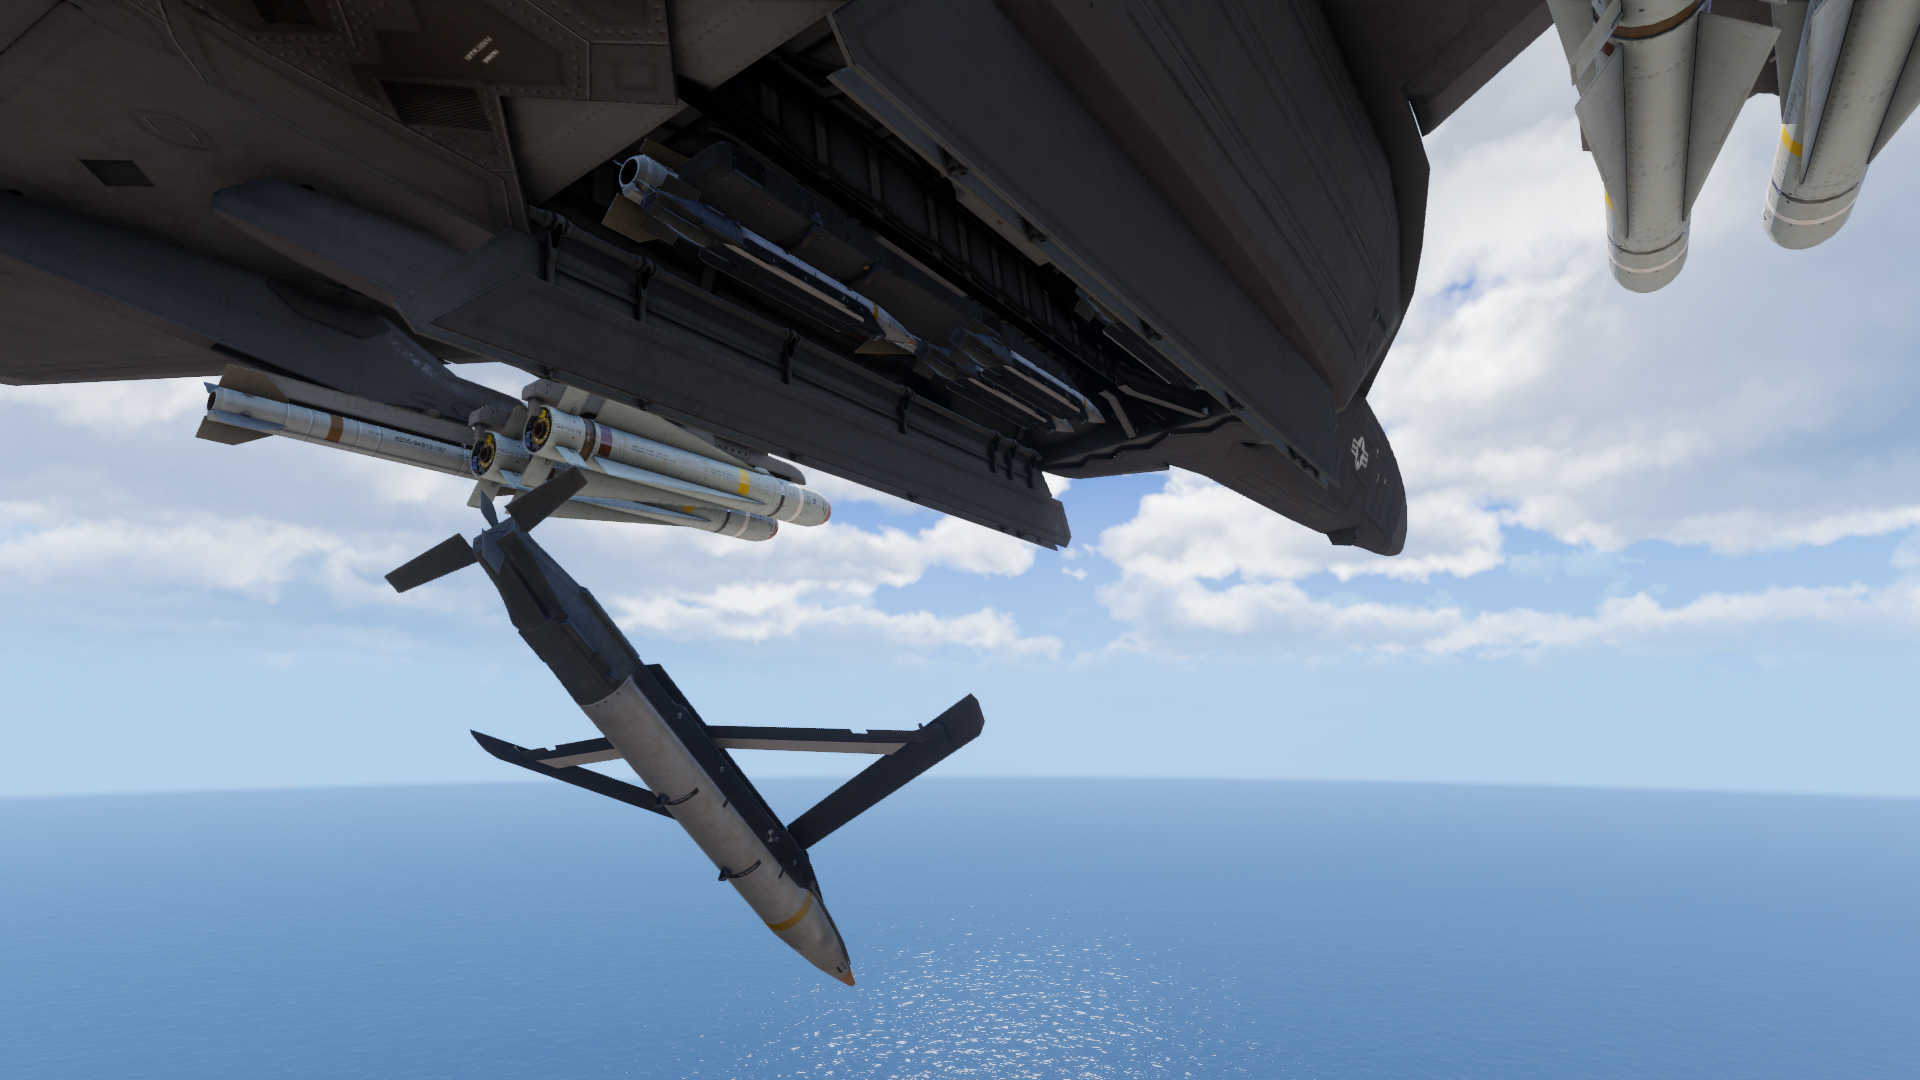 dev.arma3.com/assets/img/post/images/Fighter01_SDB.jpg